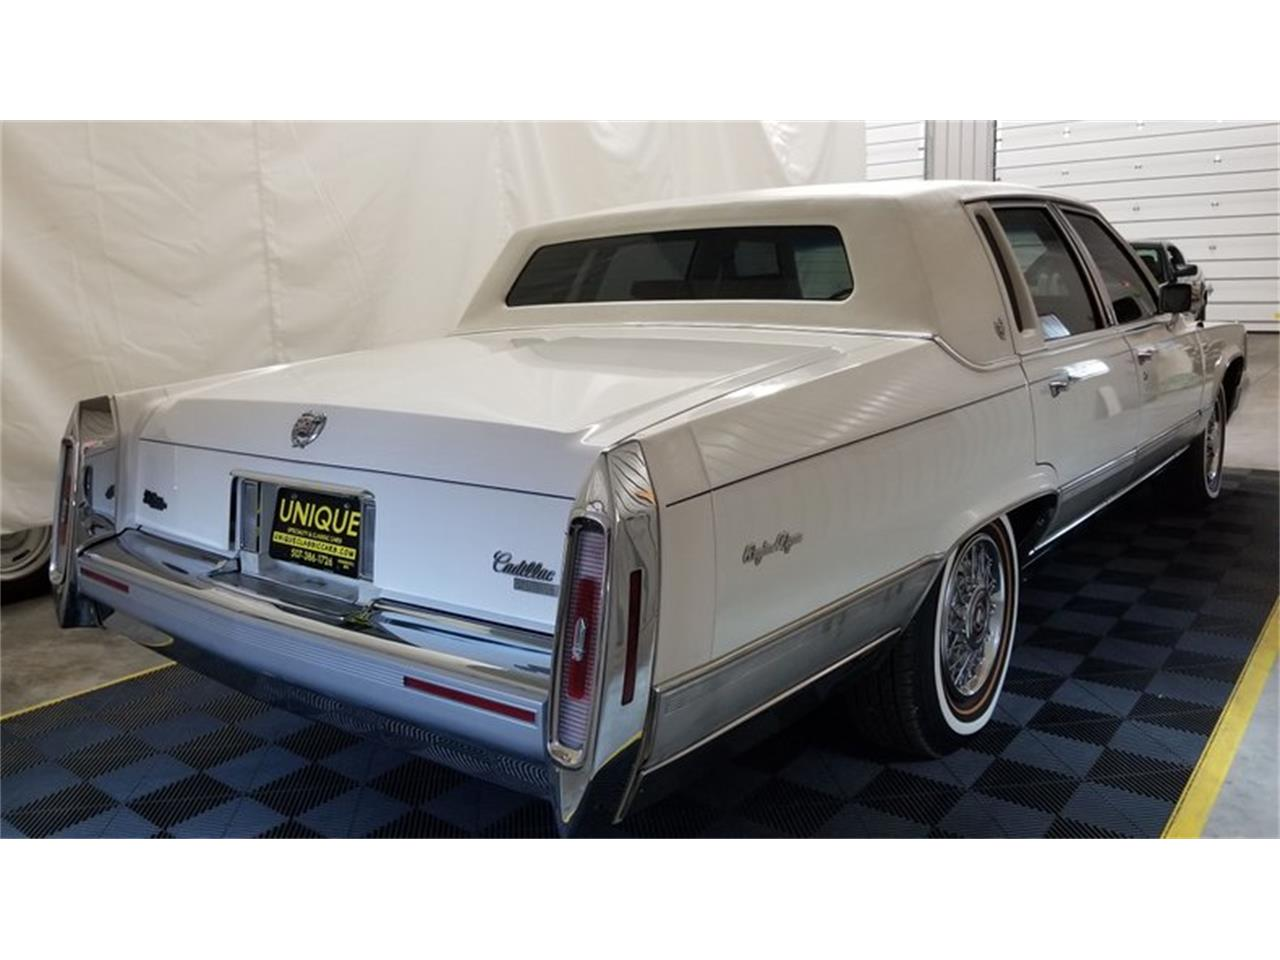 1991 Cadillac Brougham for sale in Mankato, MN – photo 4